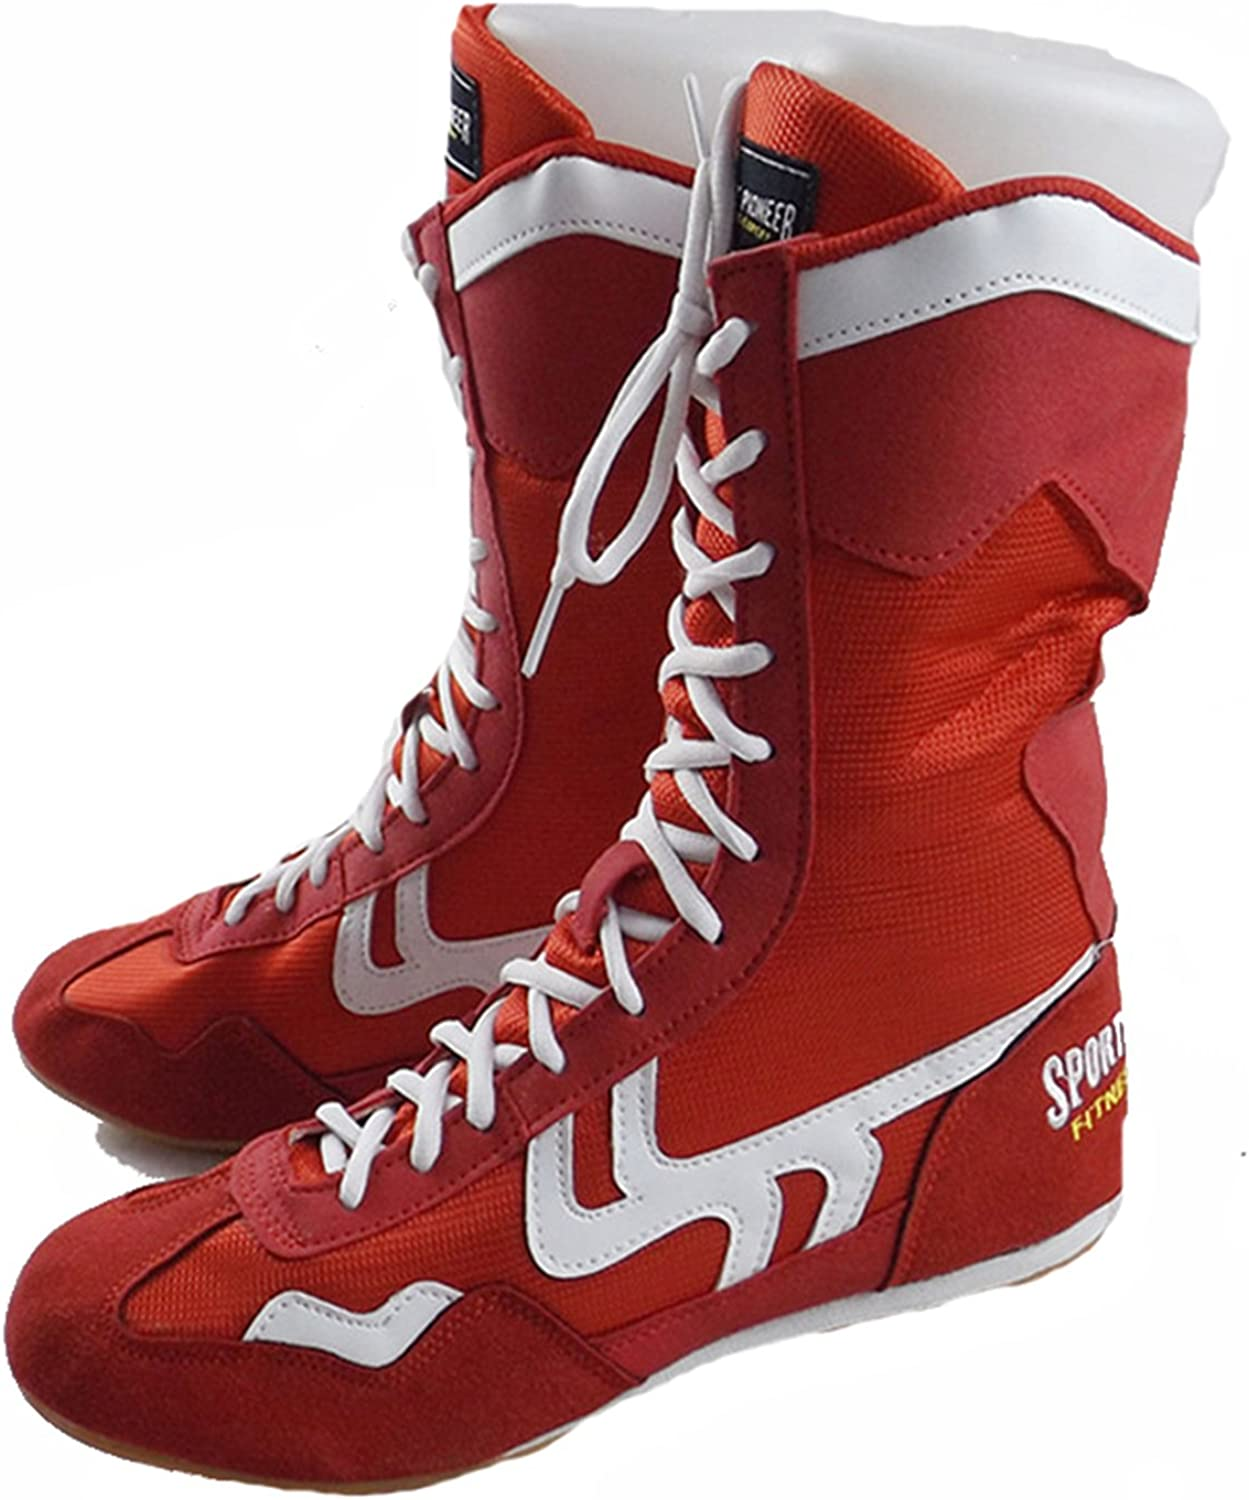 SF Max 67% OFF Wrestling Shoes Boxing Boots Rubber Training 5 popular Shoe Combat Sole